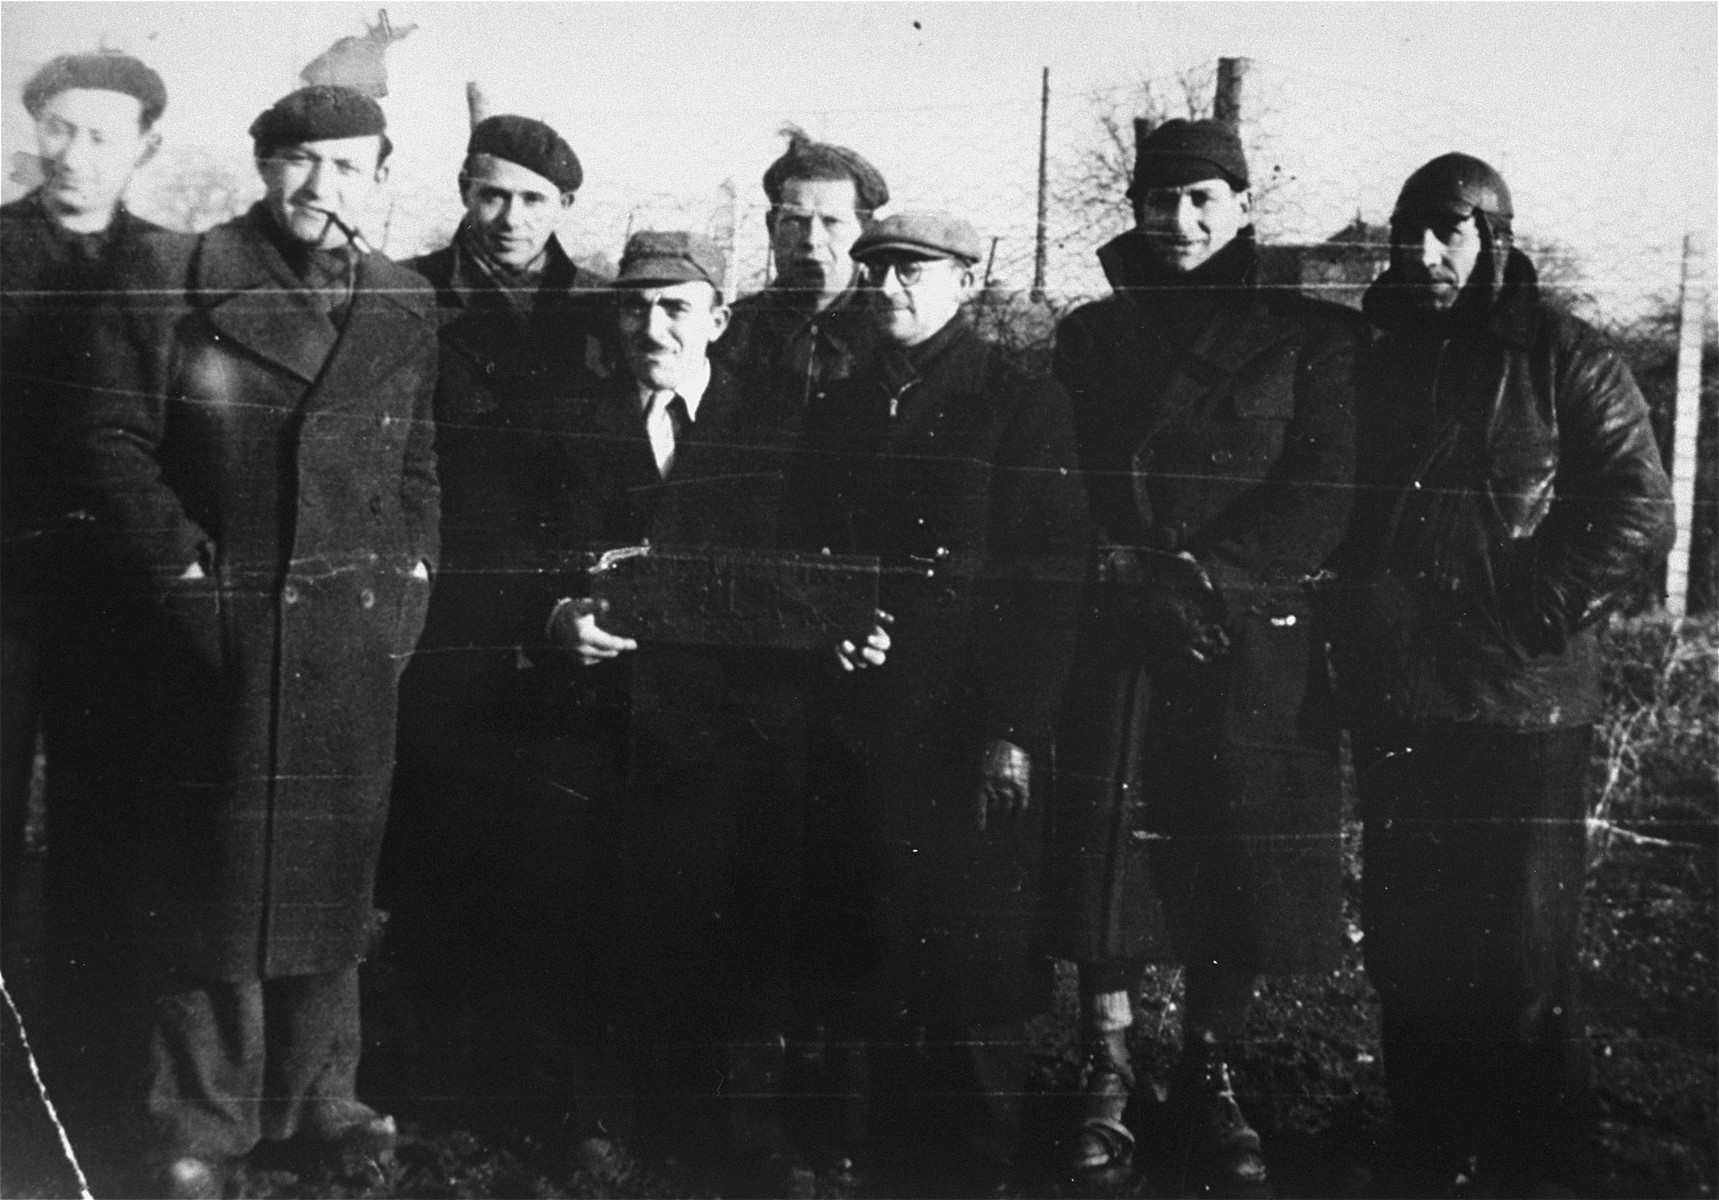 A group of prisoners pose in the Beaune-la-Rolande transit camp.    At the far right is Bernard Tepicht who was deported to Auschwitz, where he perished in 1942.  His wife was transported to Auschwitz via Drancy in June of 1942 and also perished.  Their two daughters, Lea (now Lea Borenstein), born in 1929, and Georgette (now Georgette Brinberg), born in 1938, survived the war by hiding on the run, either by themselves or on farms.